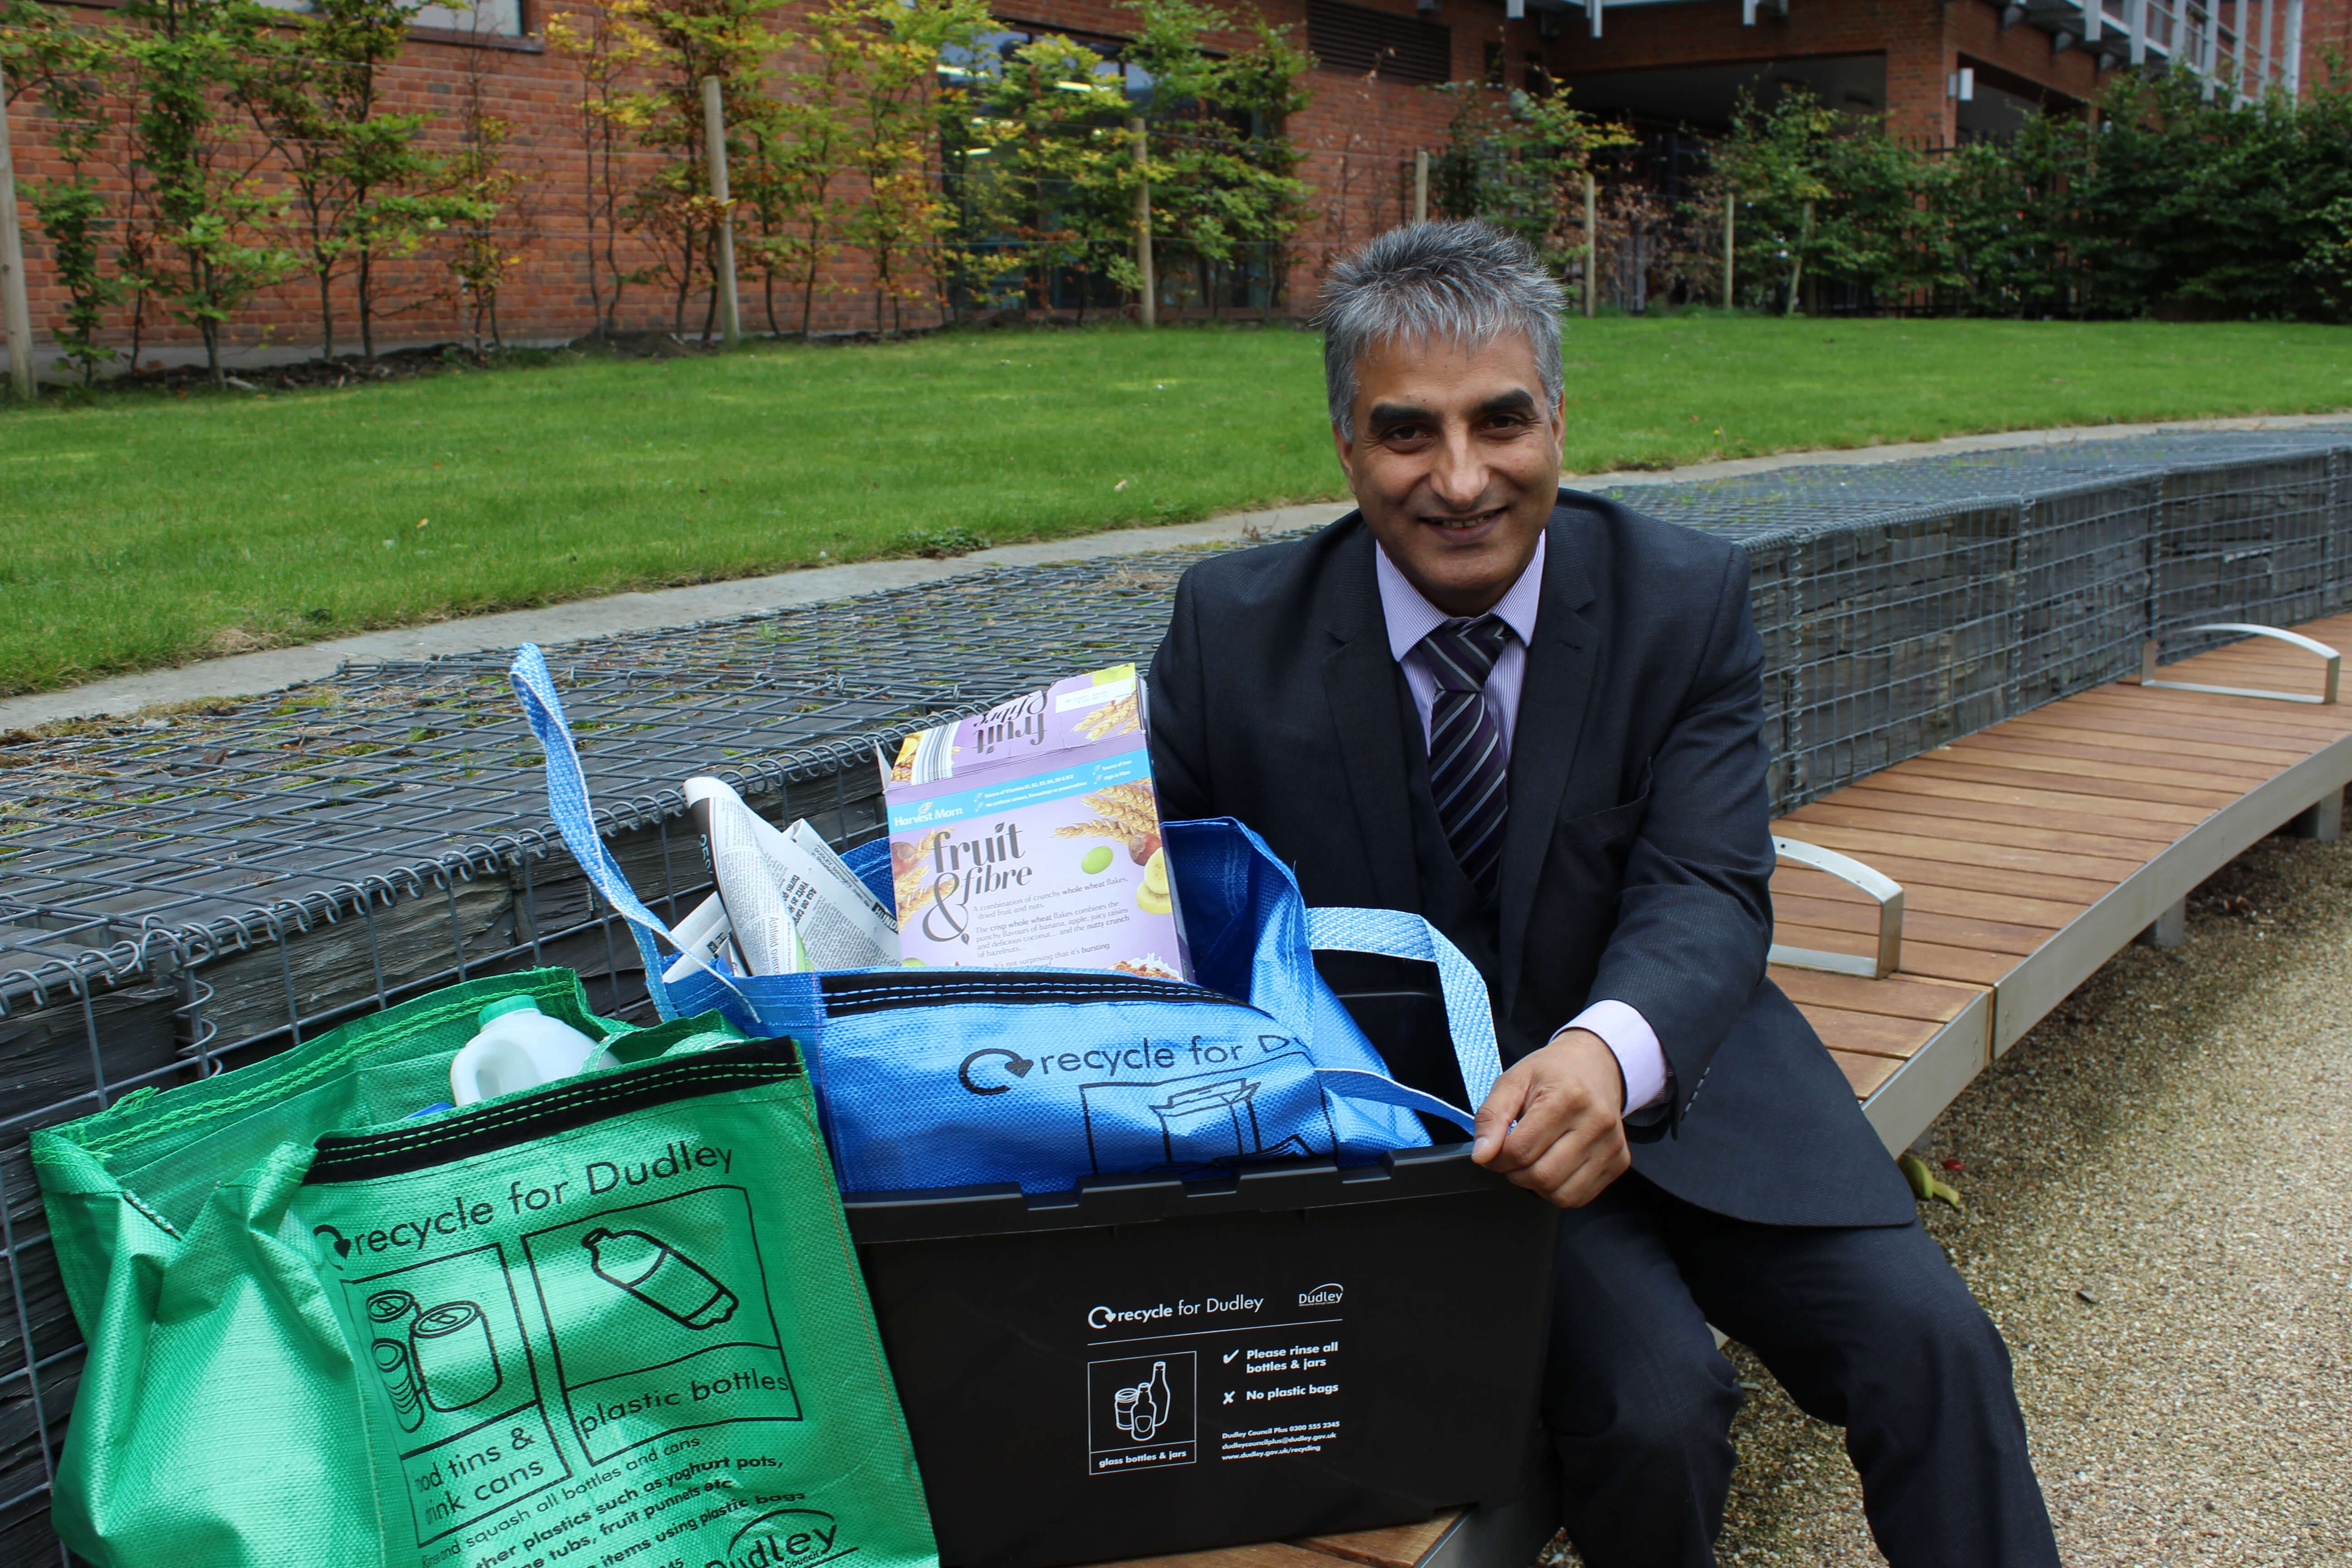 Council pledges to recycle well for Dudley